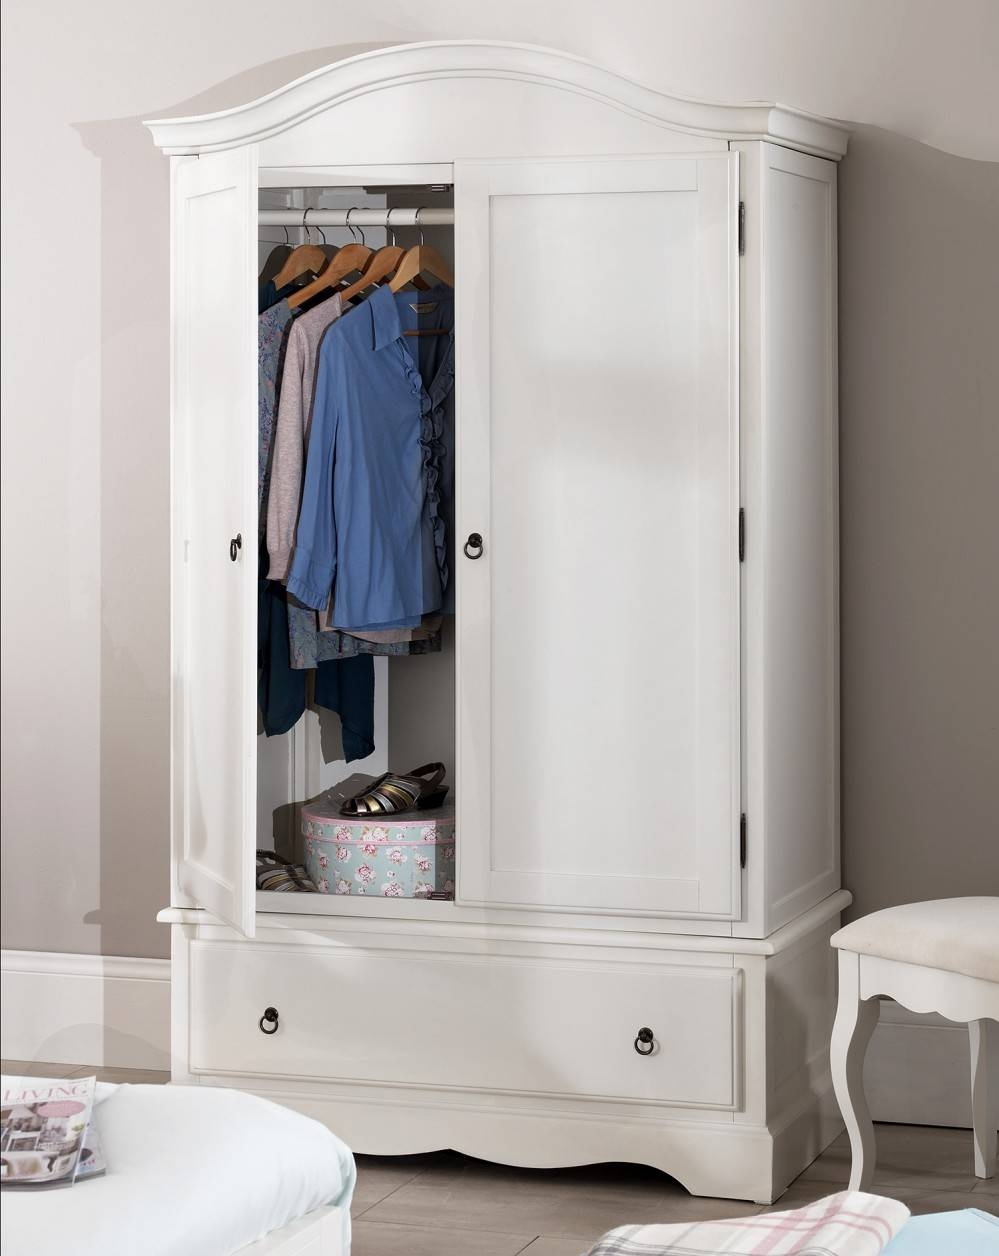 Romance Double Wardrobe, Stunning White Wardrobe With Deep Drawer within Double Rail Wardrobe (Image 18 of 30)